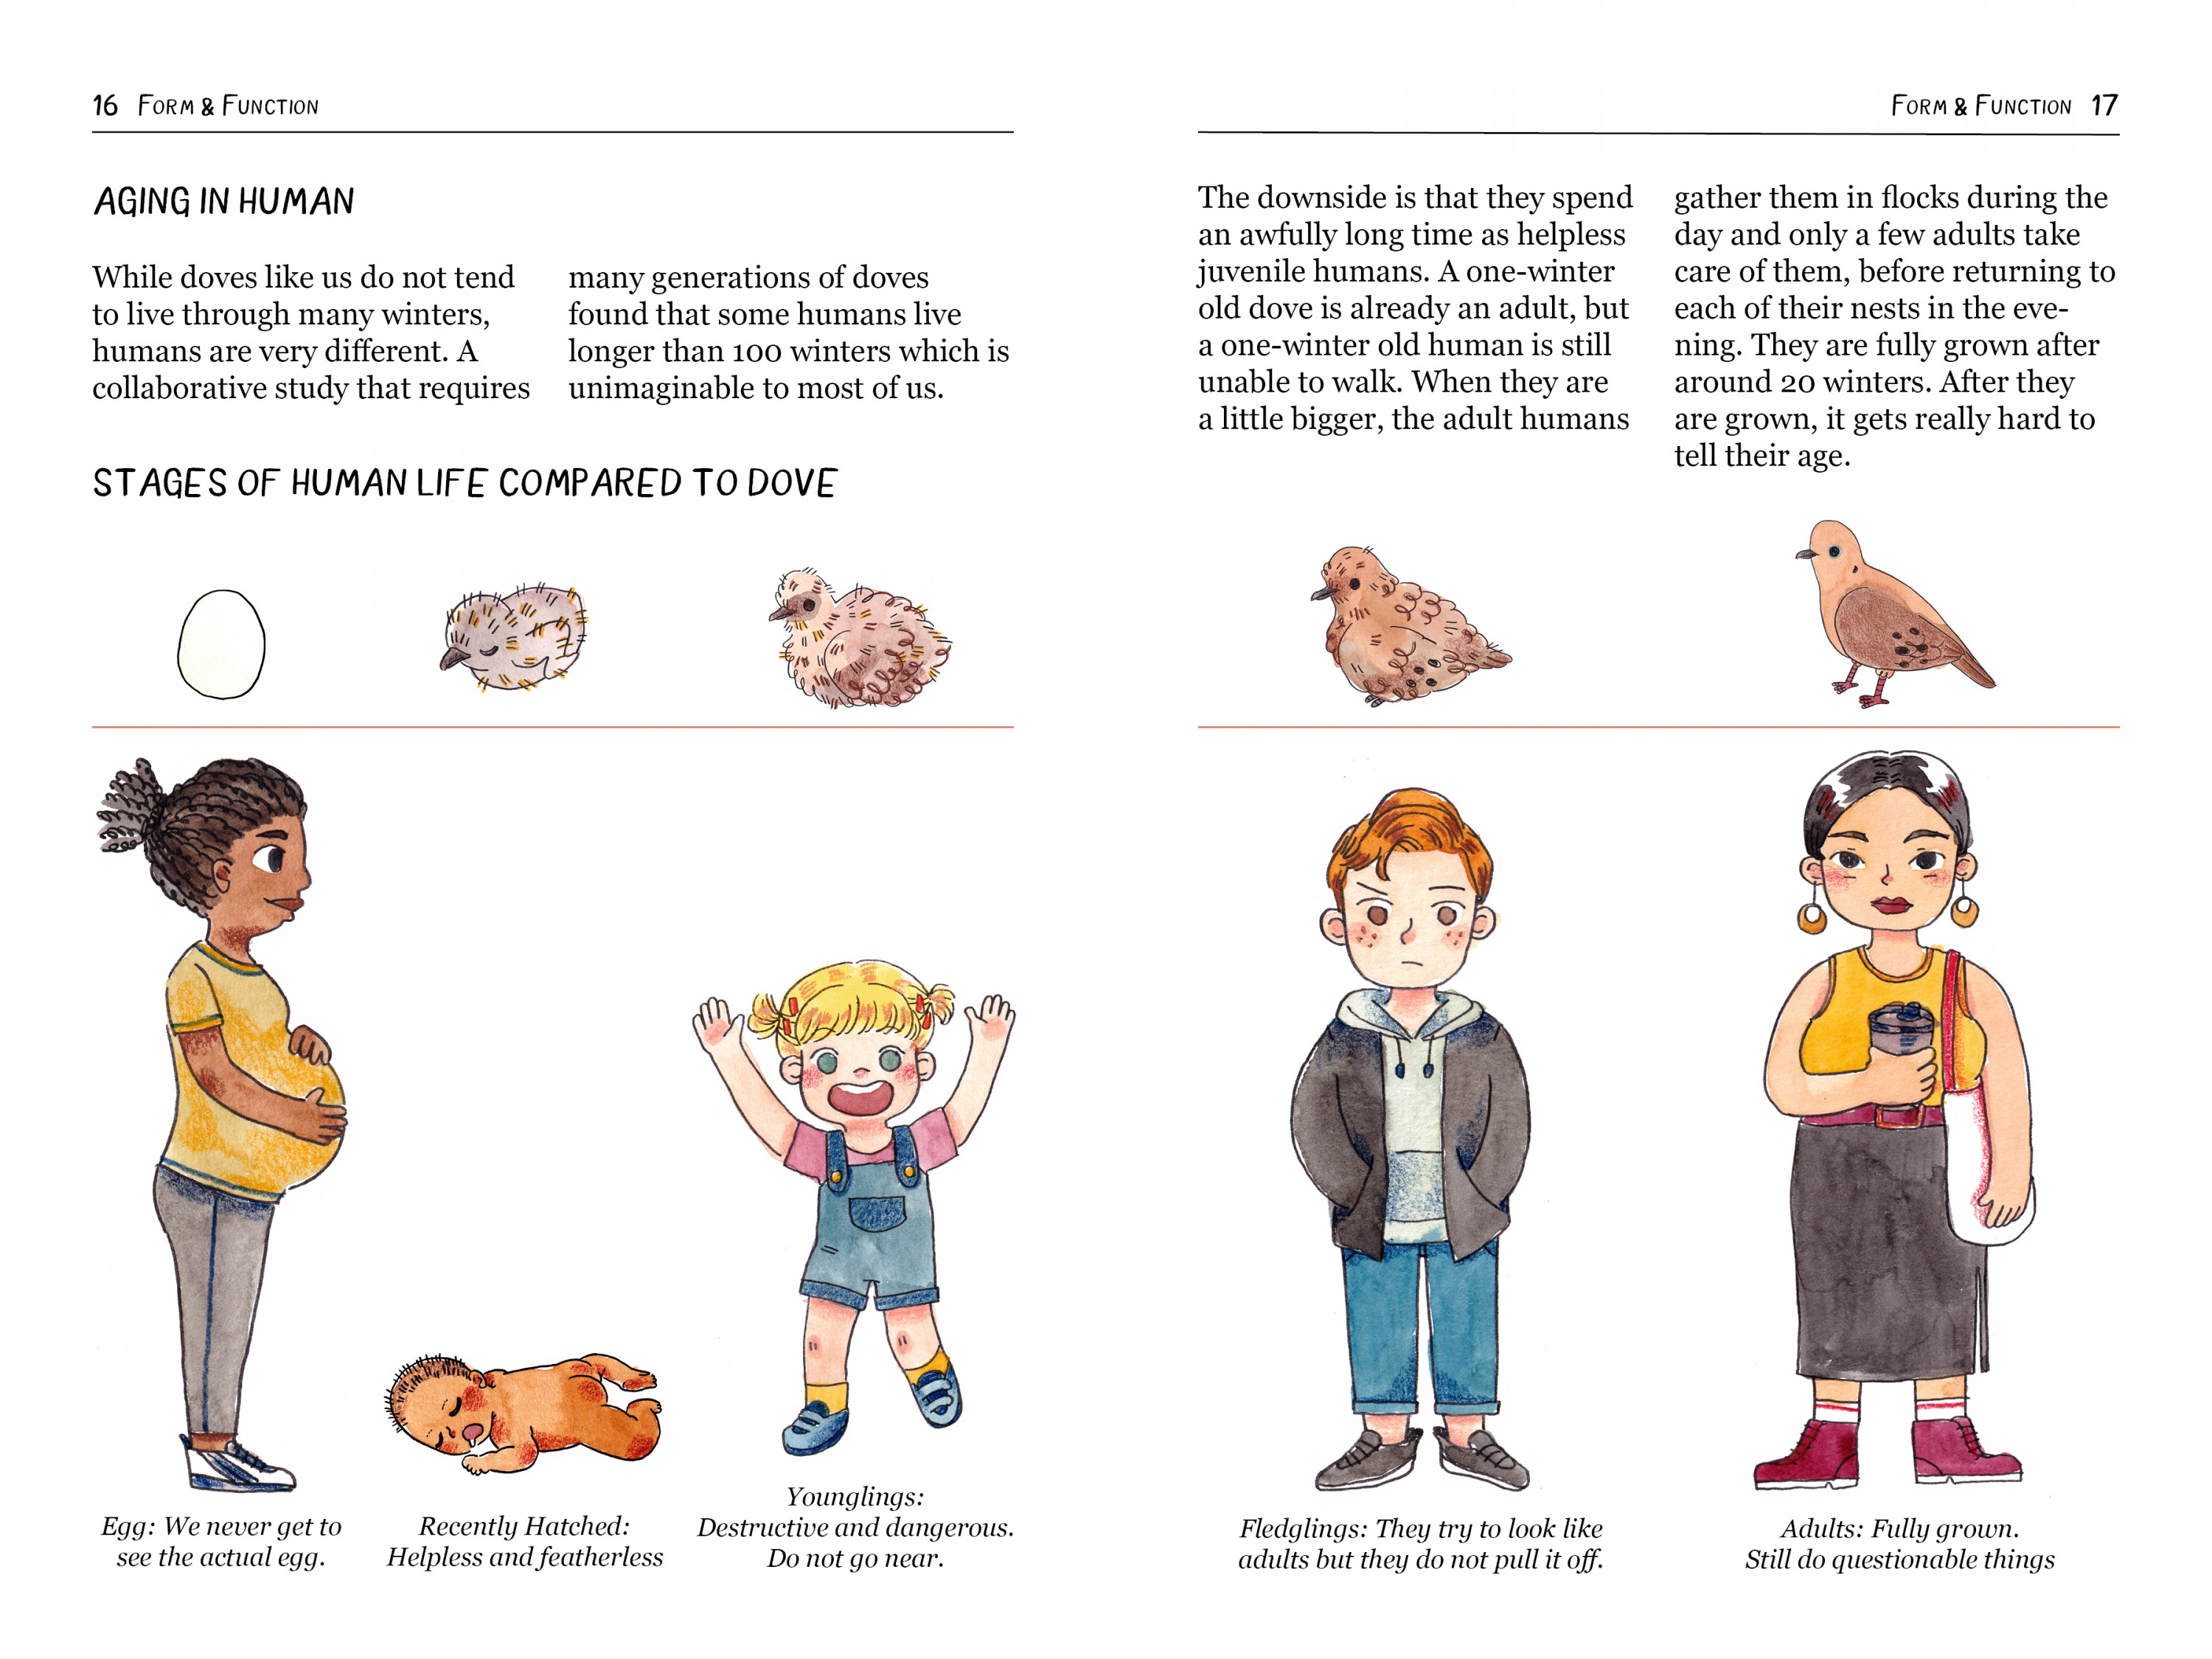 A textbook spread from the book